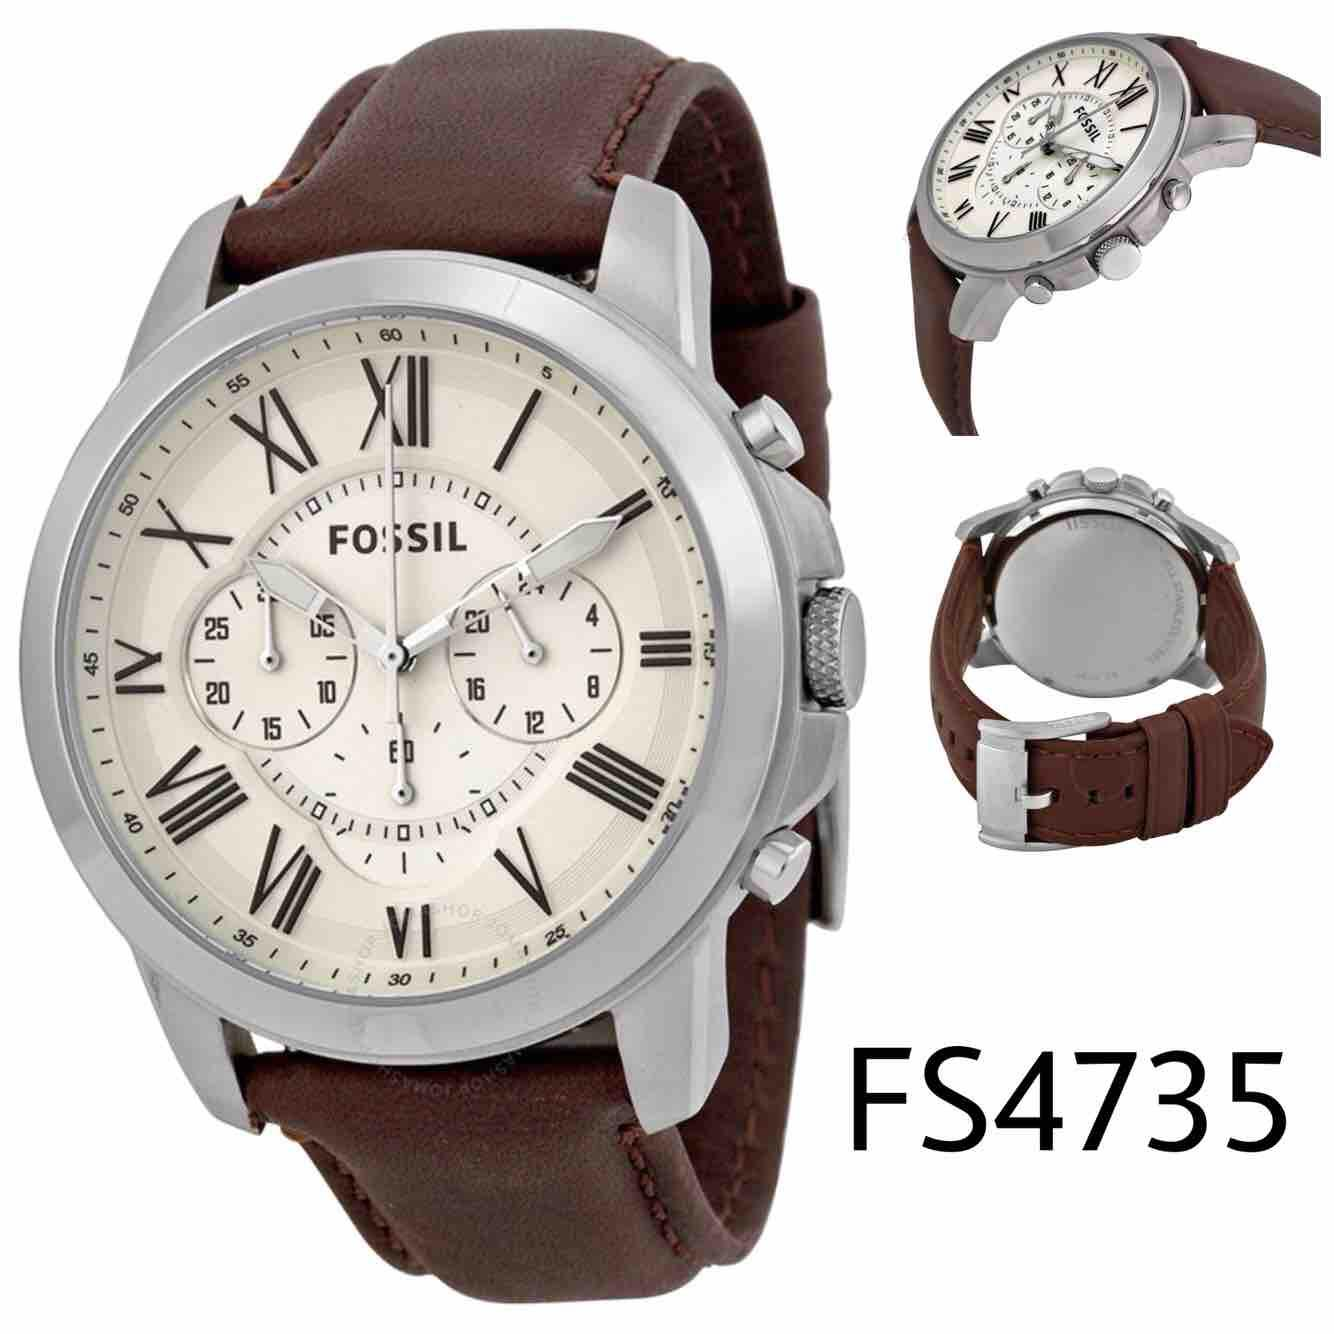 633c69bfa5ee Fossil Philippines  Fossil price list - Fossil Watches for Men ...